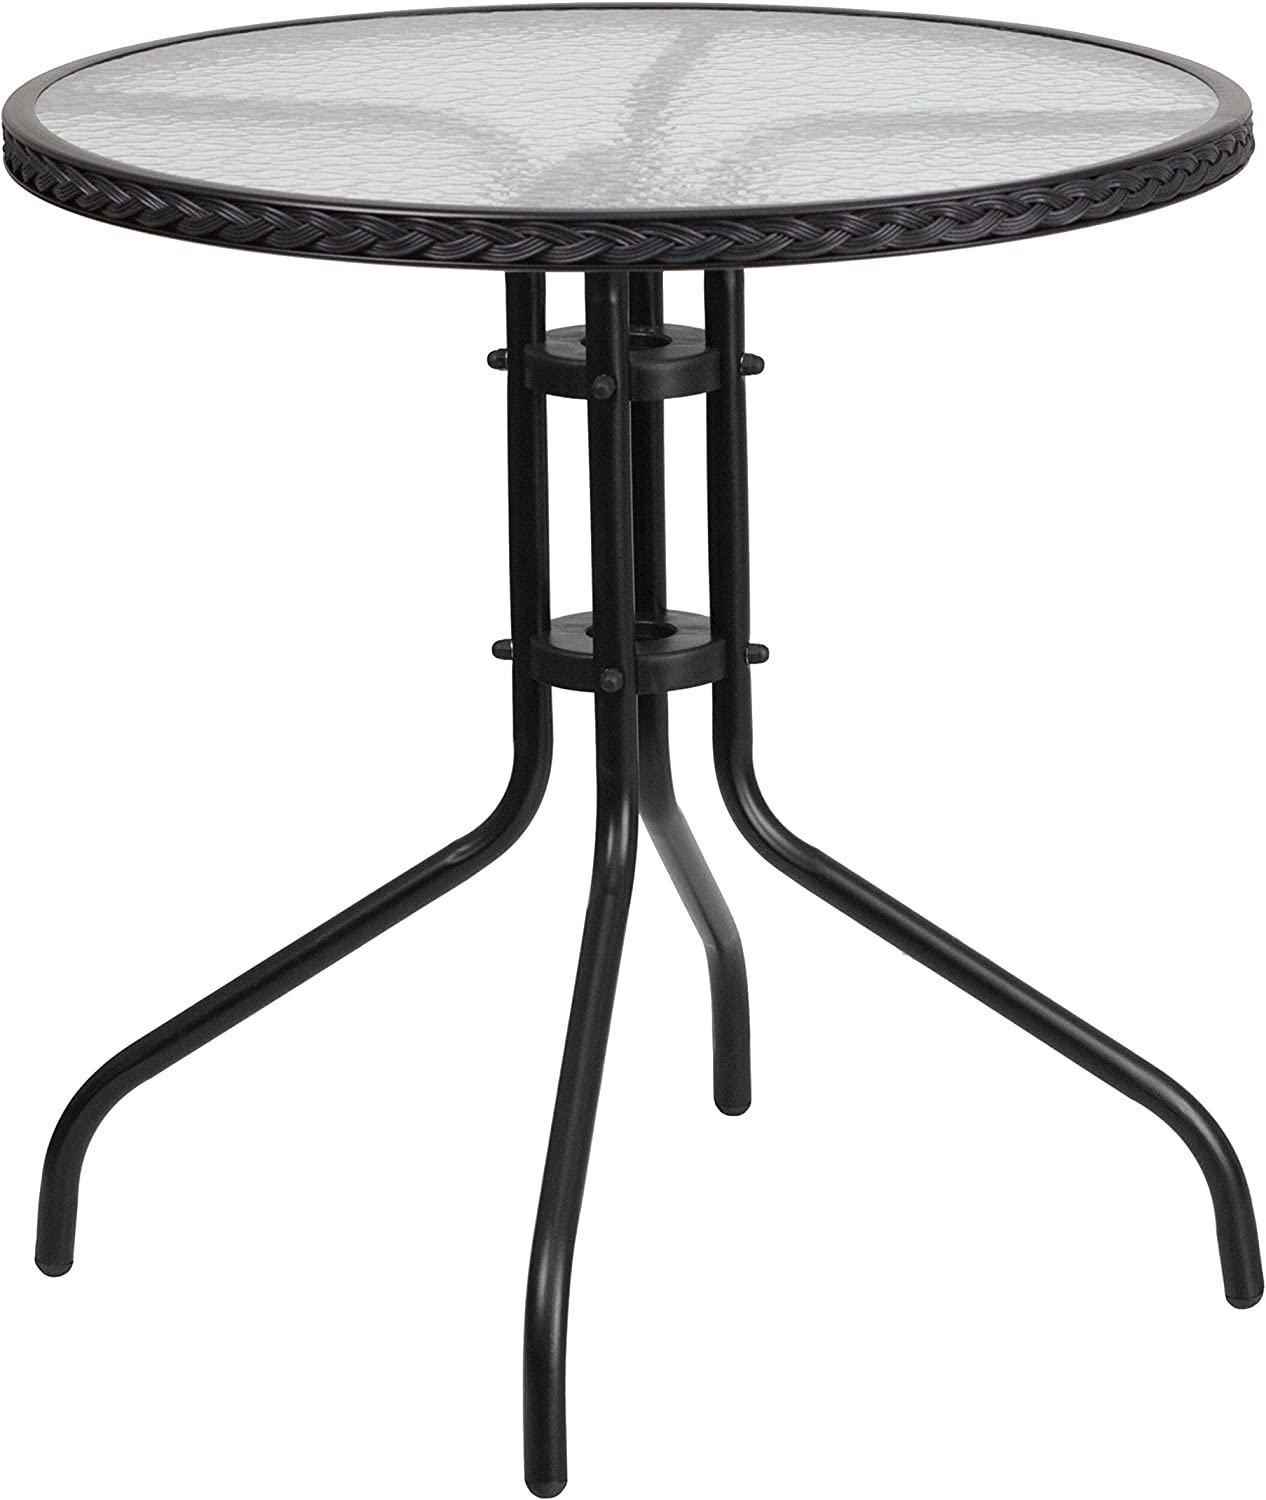 Flash Furniture 28'' Round Tempered Glass Metal Table with Black Rattan Edging: Furniture & Decor